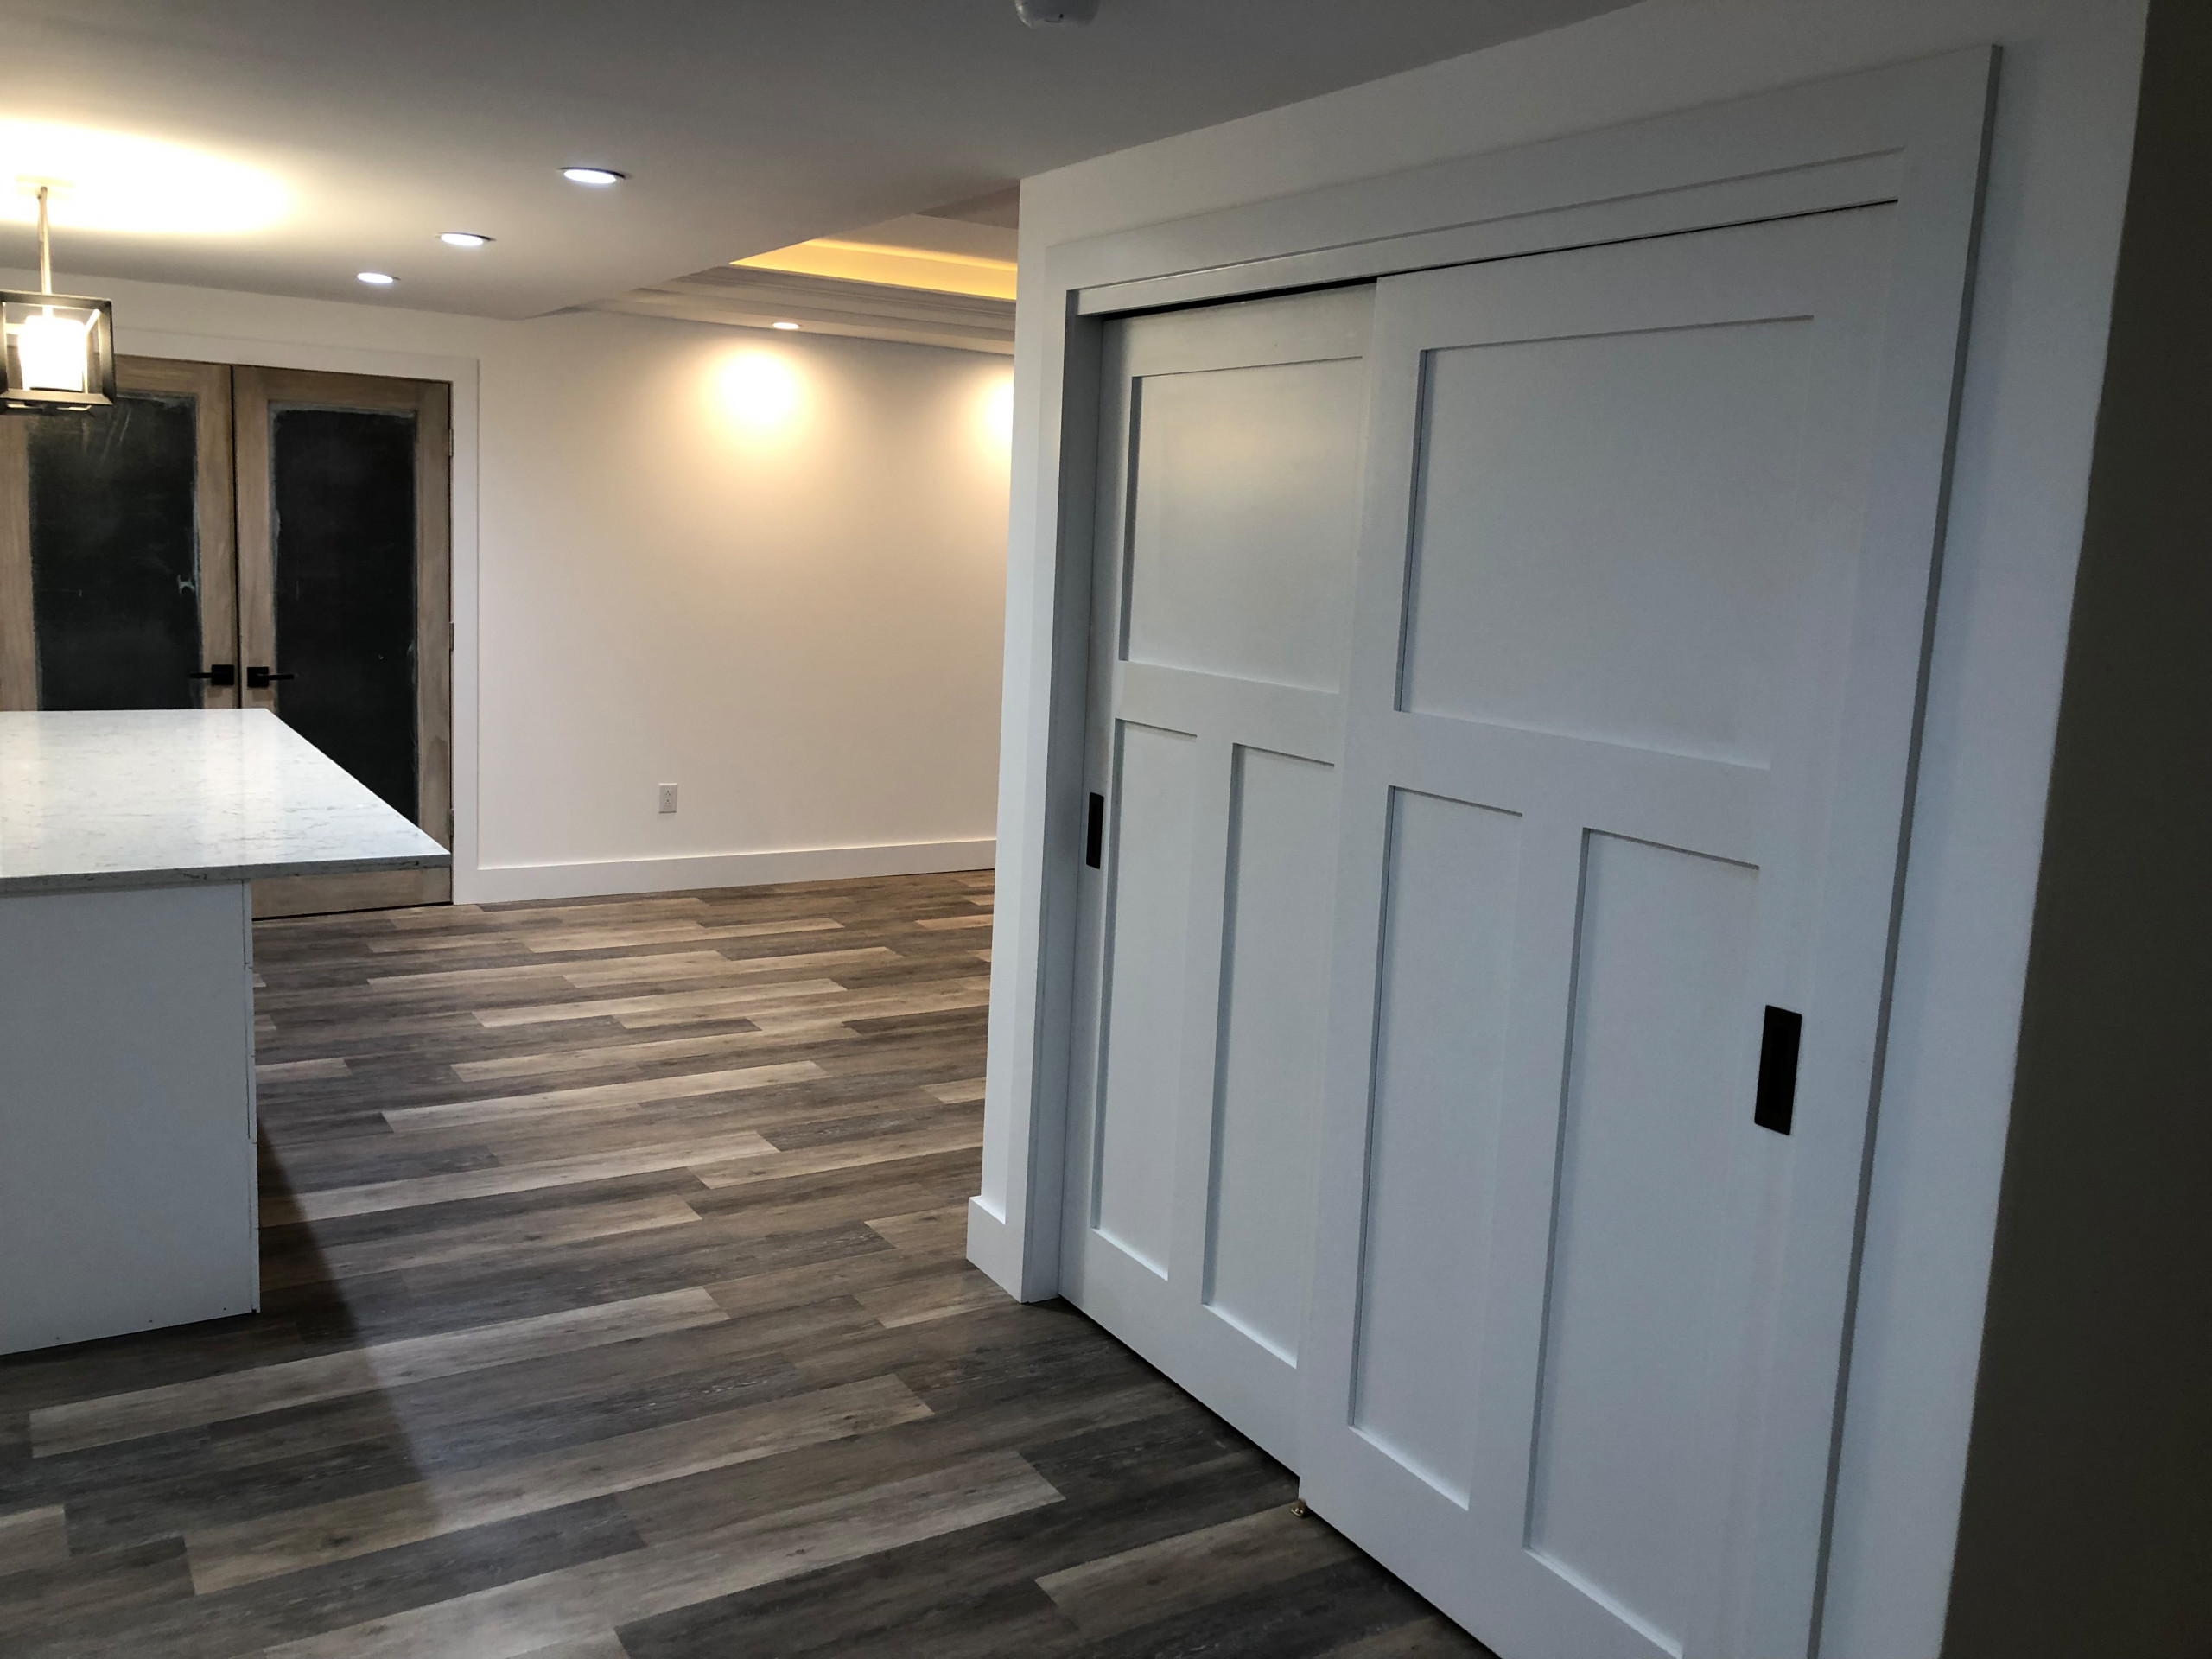 New construction basement finish